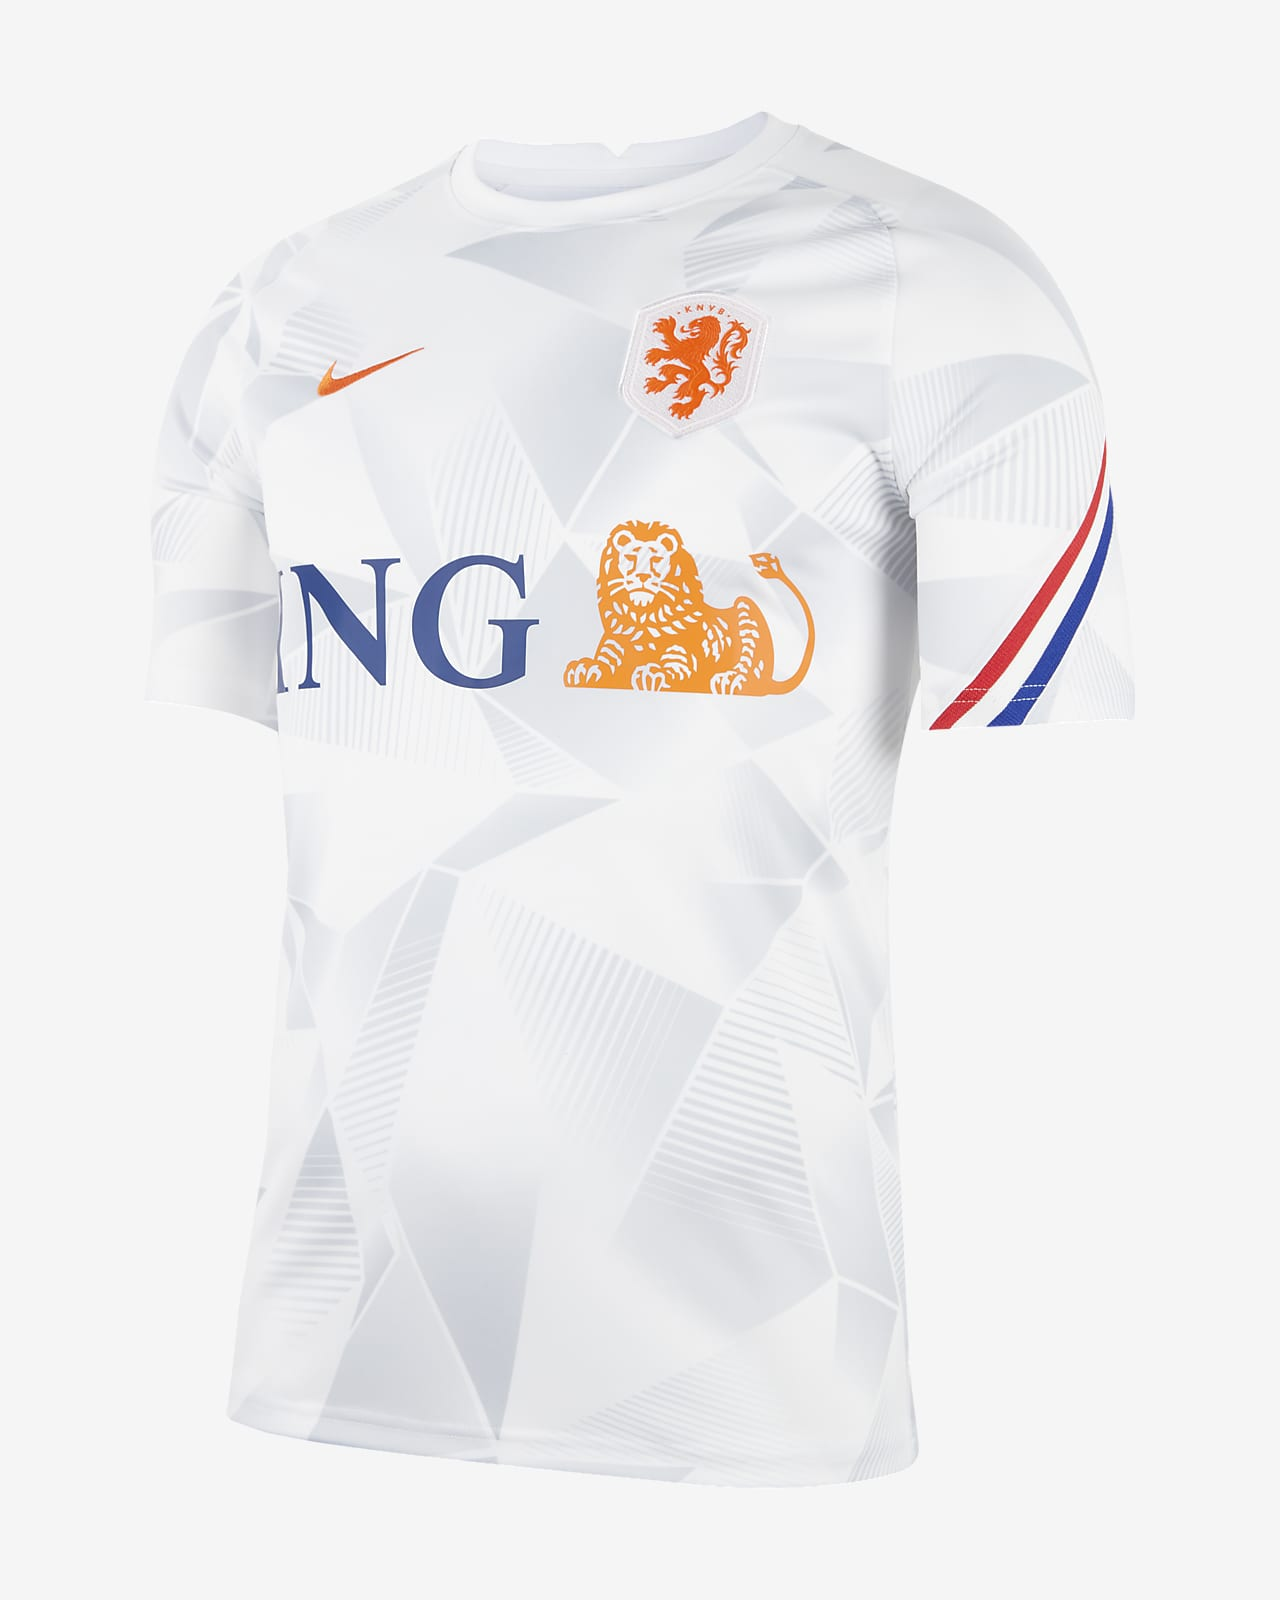 Netherlands Men's Short-Sleeve Football Top